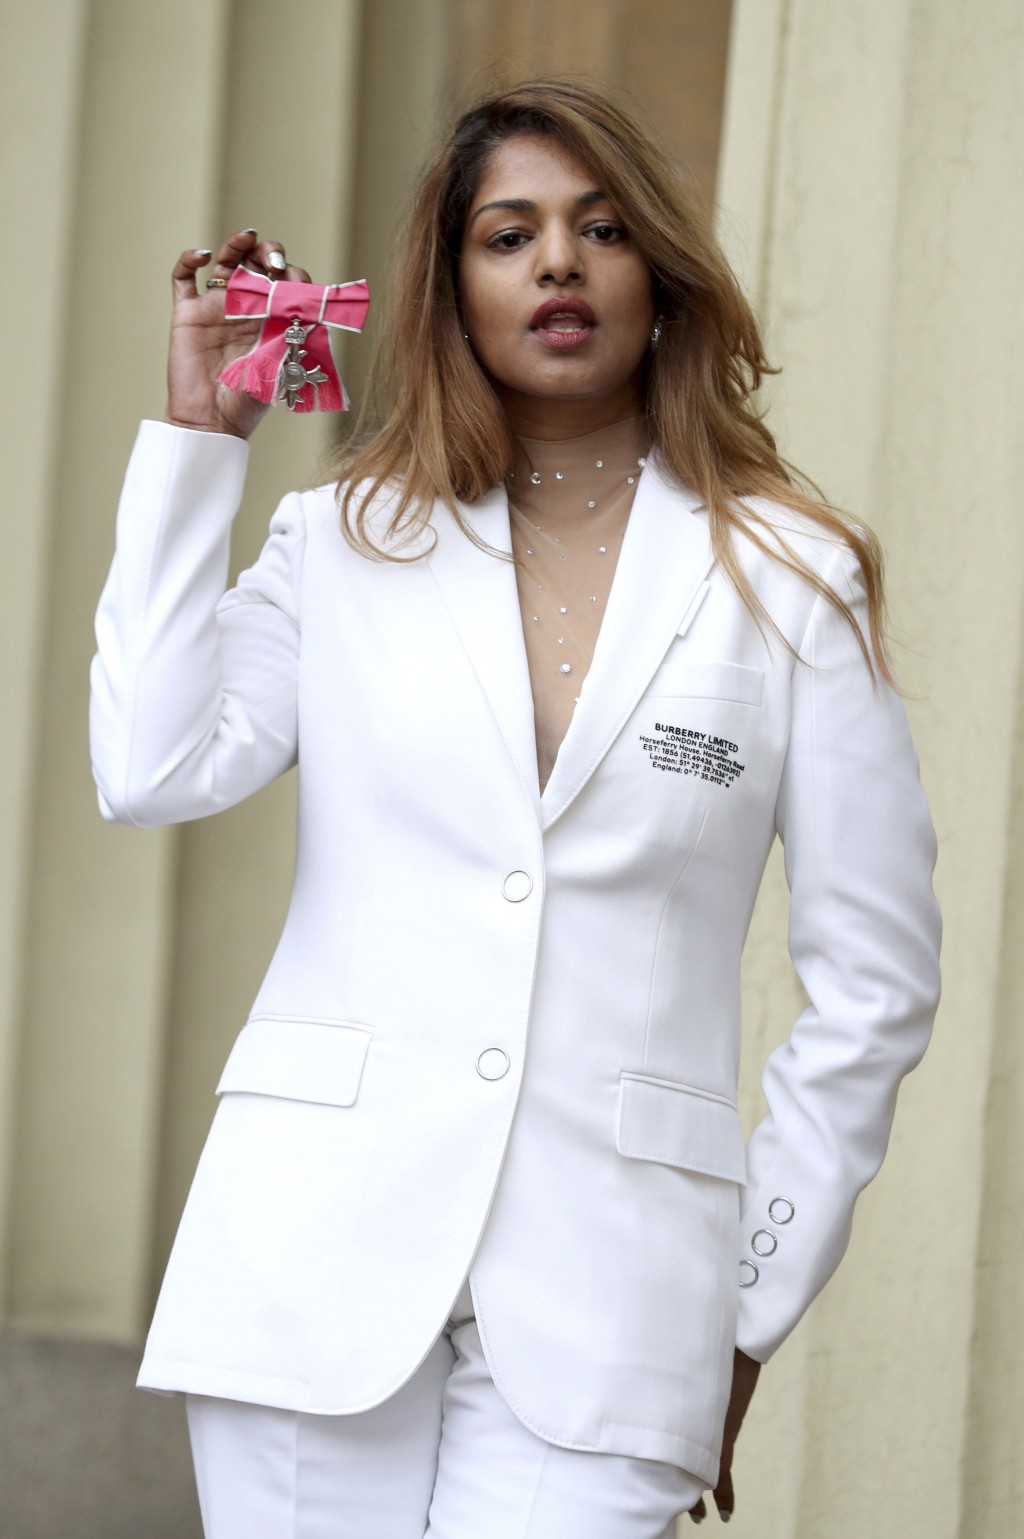 Rapper and singer MIA, real name Mathangi Arulpragasam, poses with her MBE award following an investiture ceremony at Buckingham Palace in London, Tue...